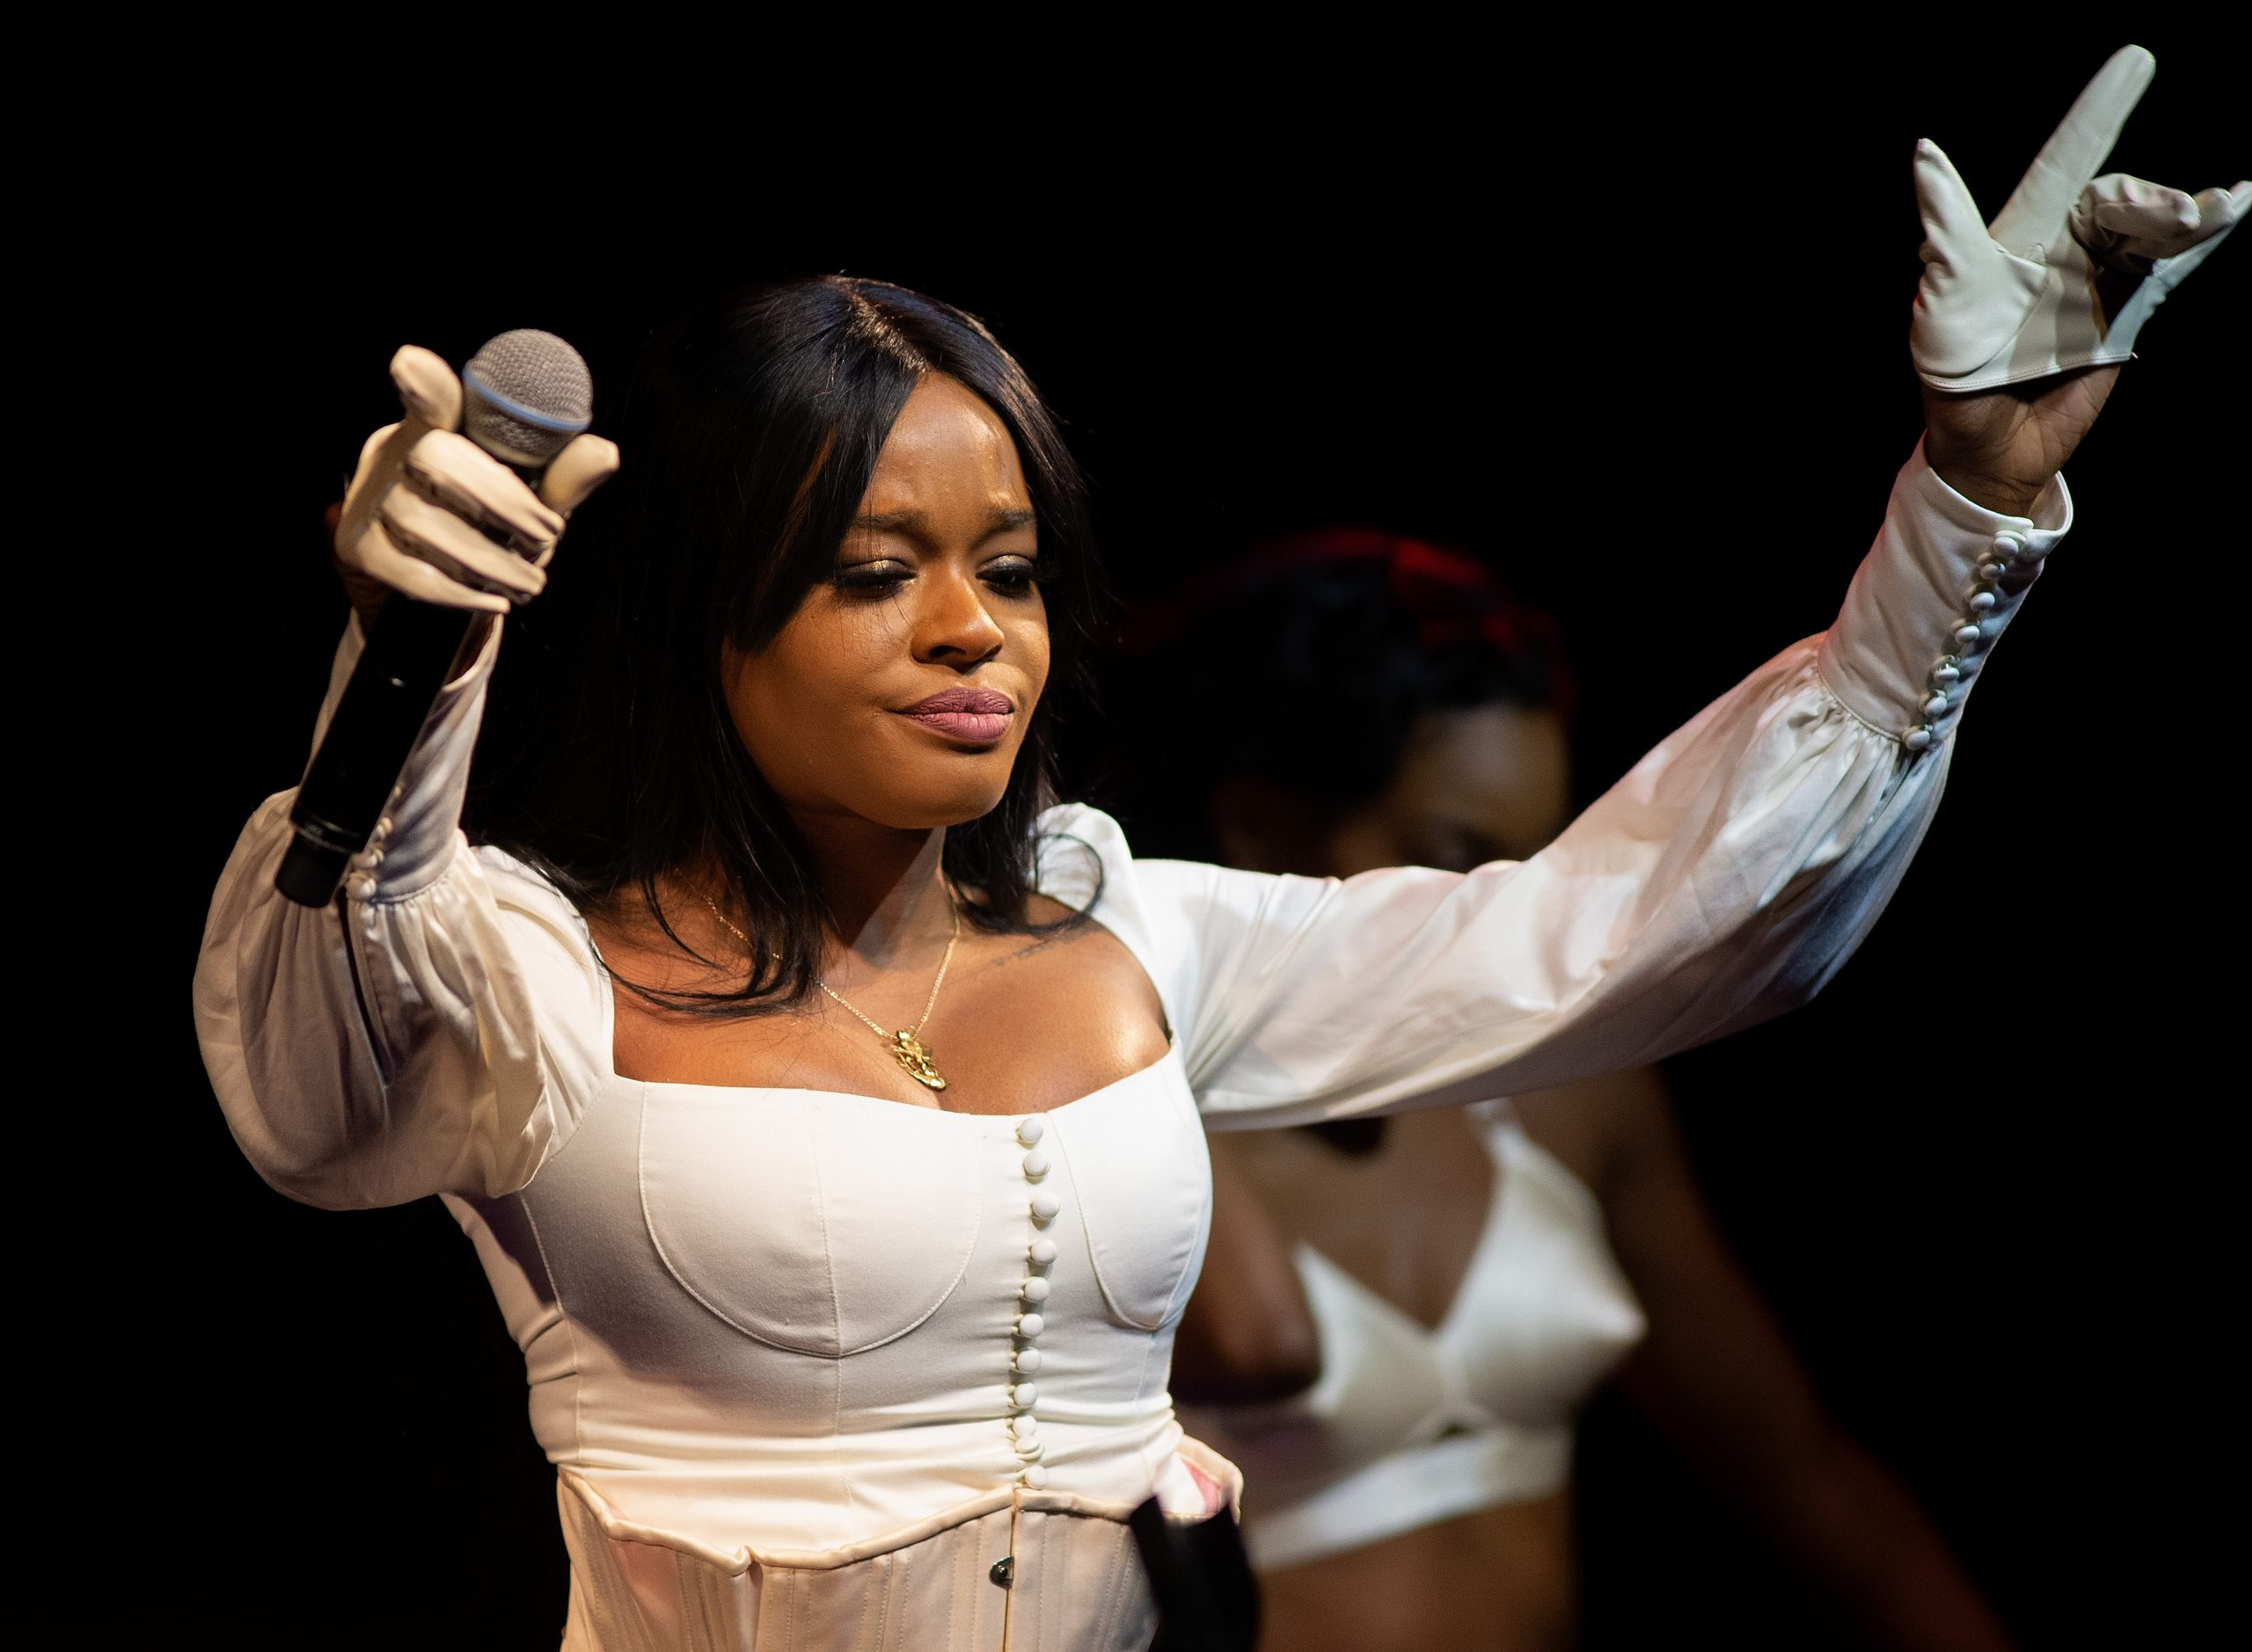 Did Azealia Banks Really Dig Up Her Cat To Eat It?